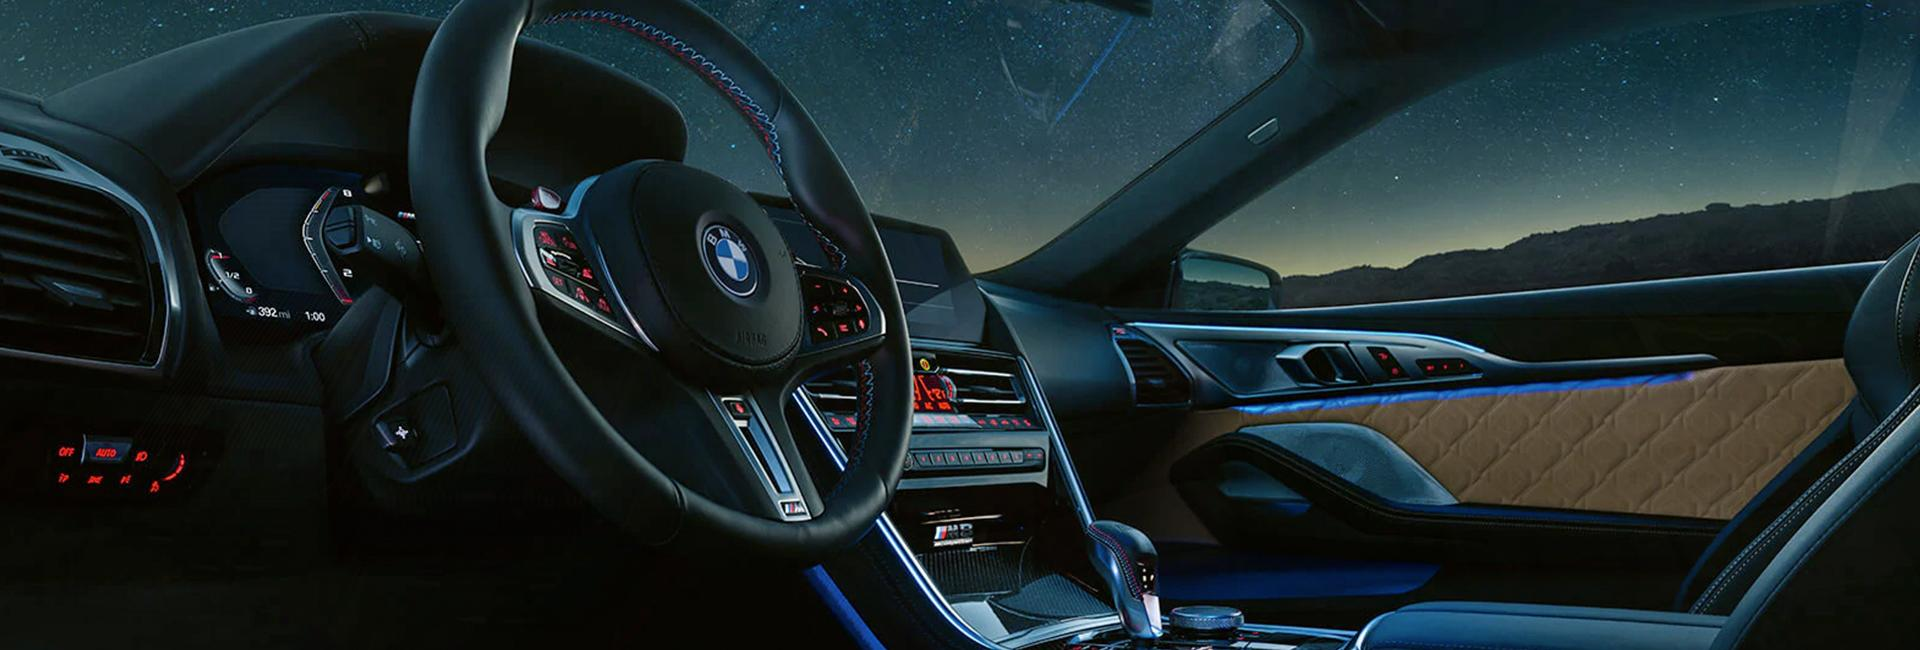 Interior view of the 2020 BMW M8